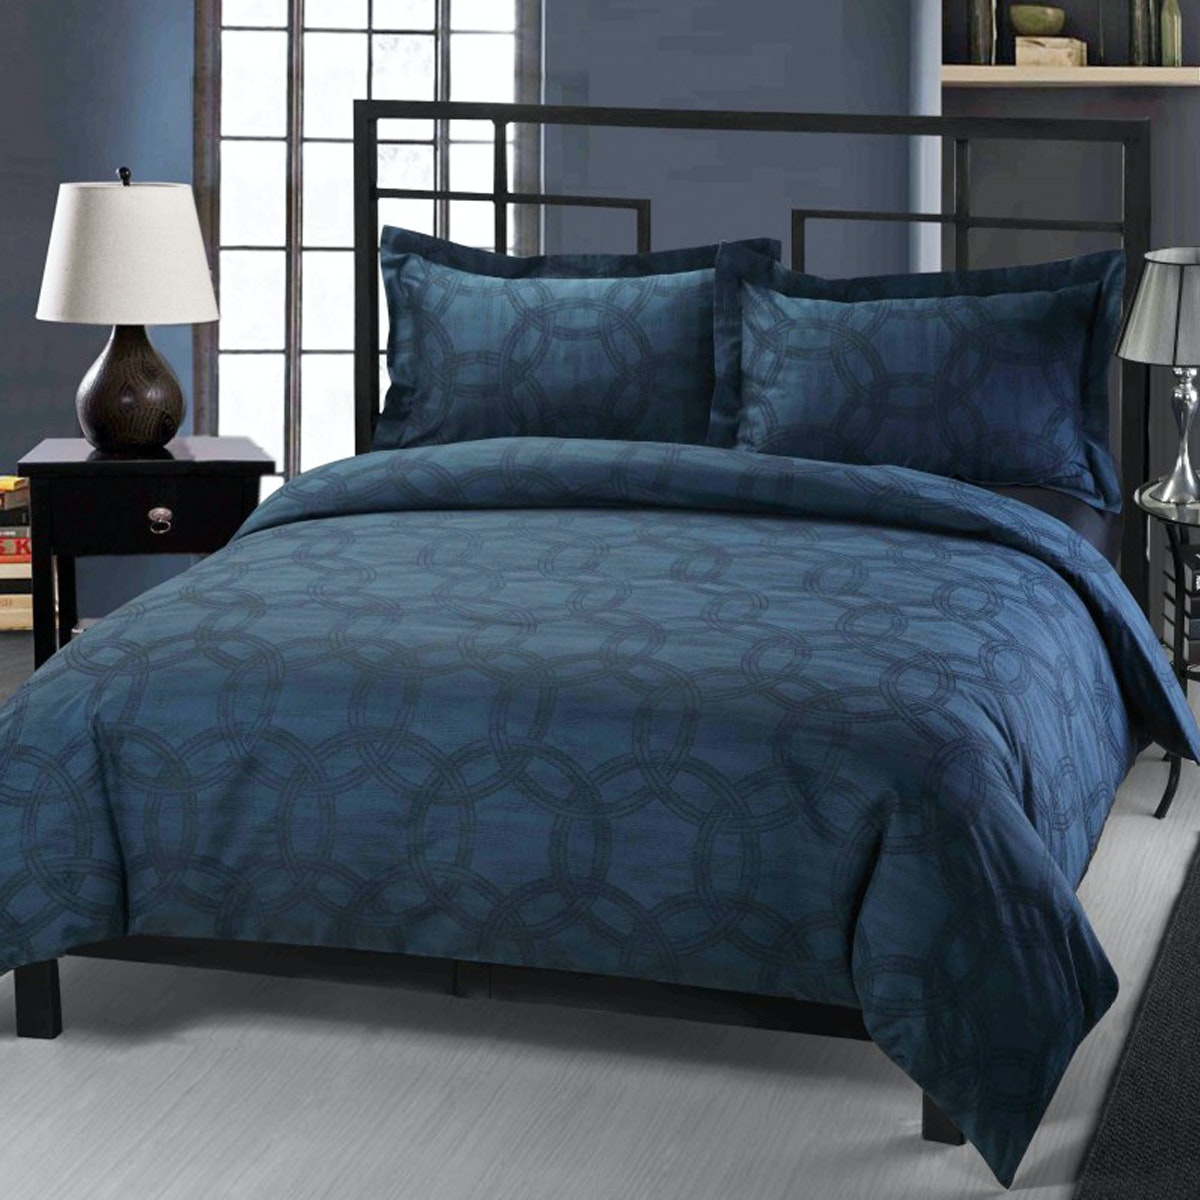 Palmerhaus Set Bedcover Mirage Navy Bedding Set 180 x 200 x 40 cm